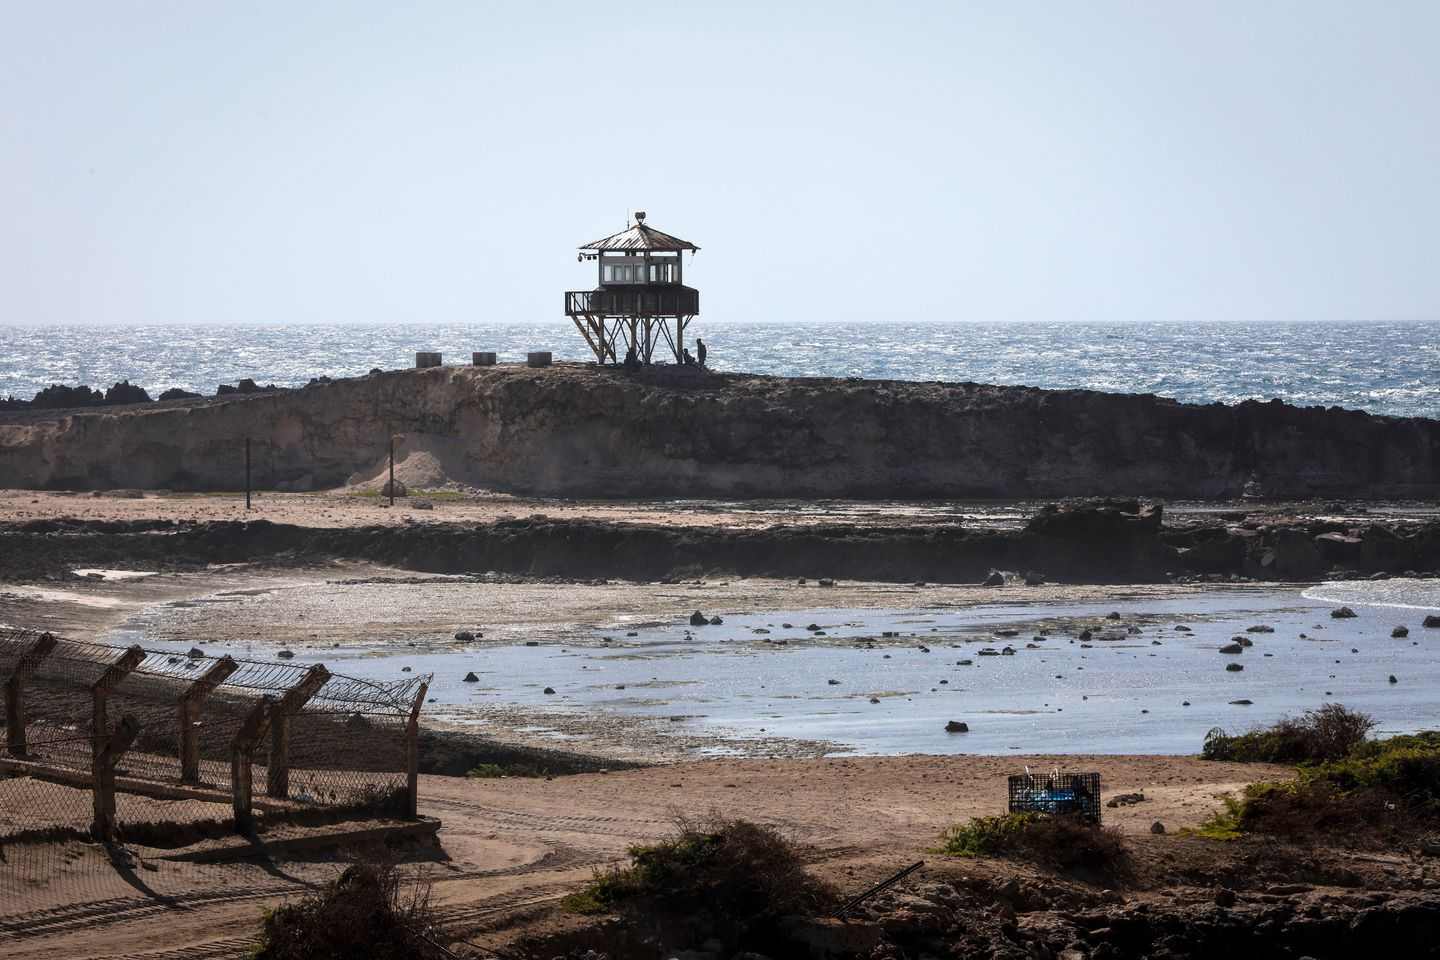 Soldiers sit at a watch post next to the runway inside Mogadishu airport's secure perimeter, where international organizations such as the United Nations and European Union are based, in Mogadishu, Somalia. (Dai Kurokawa/EPA-EFE/REX/Shutterstock)